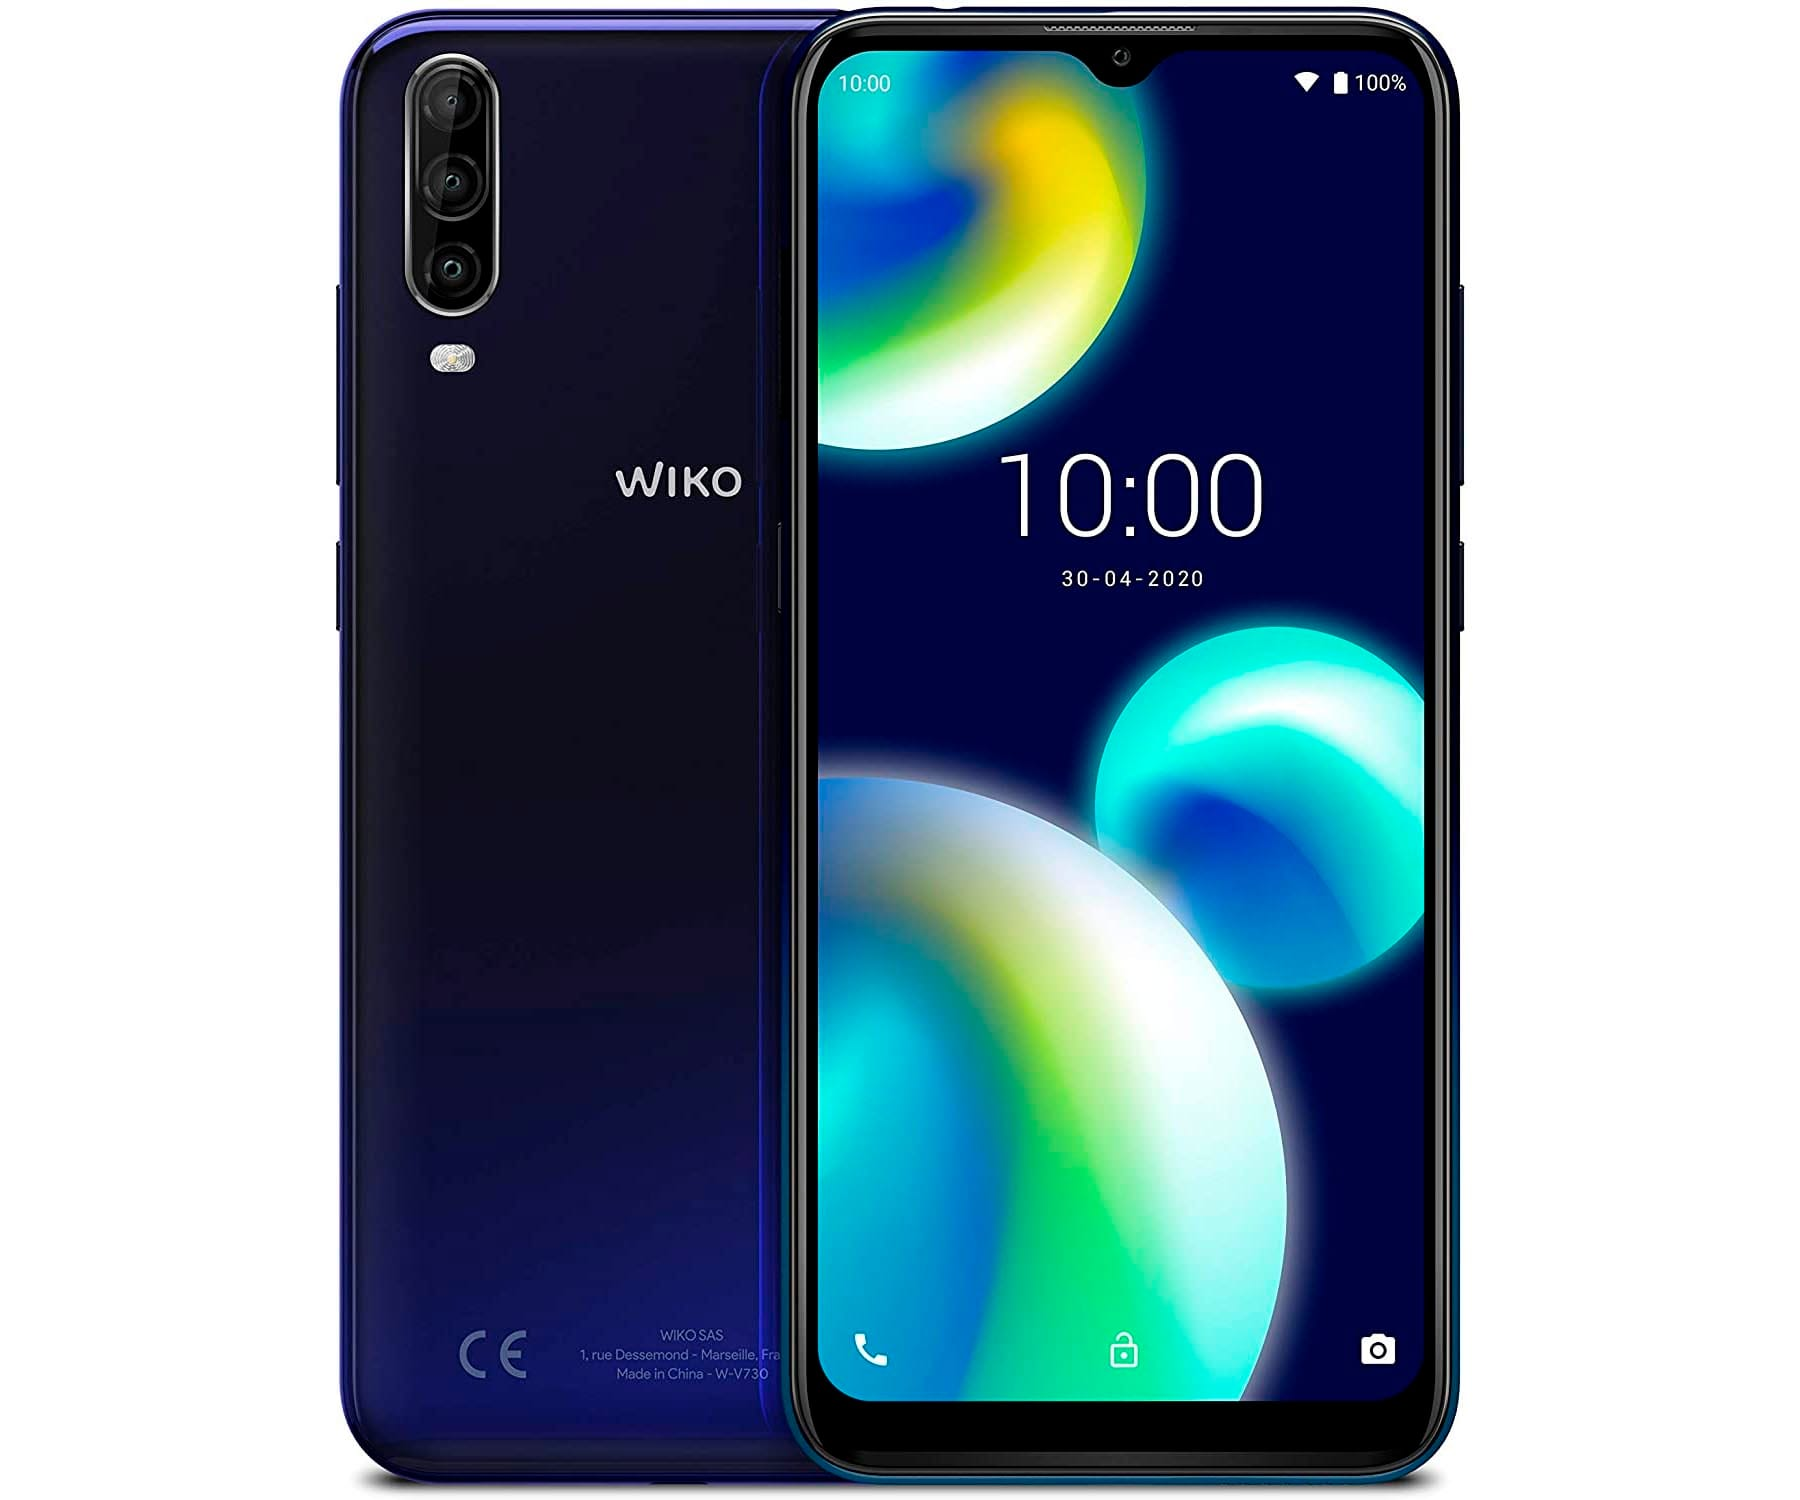 WIKO VIEW4 LITE AZUL MÓVIL 4G DUAL SIM 6.52'' HD+ OCTACORE 32GB 2GB RAM TRICAM 13MP SELFIES 5MP